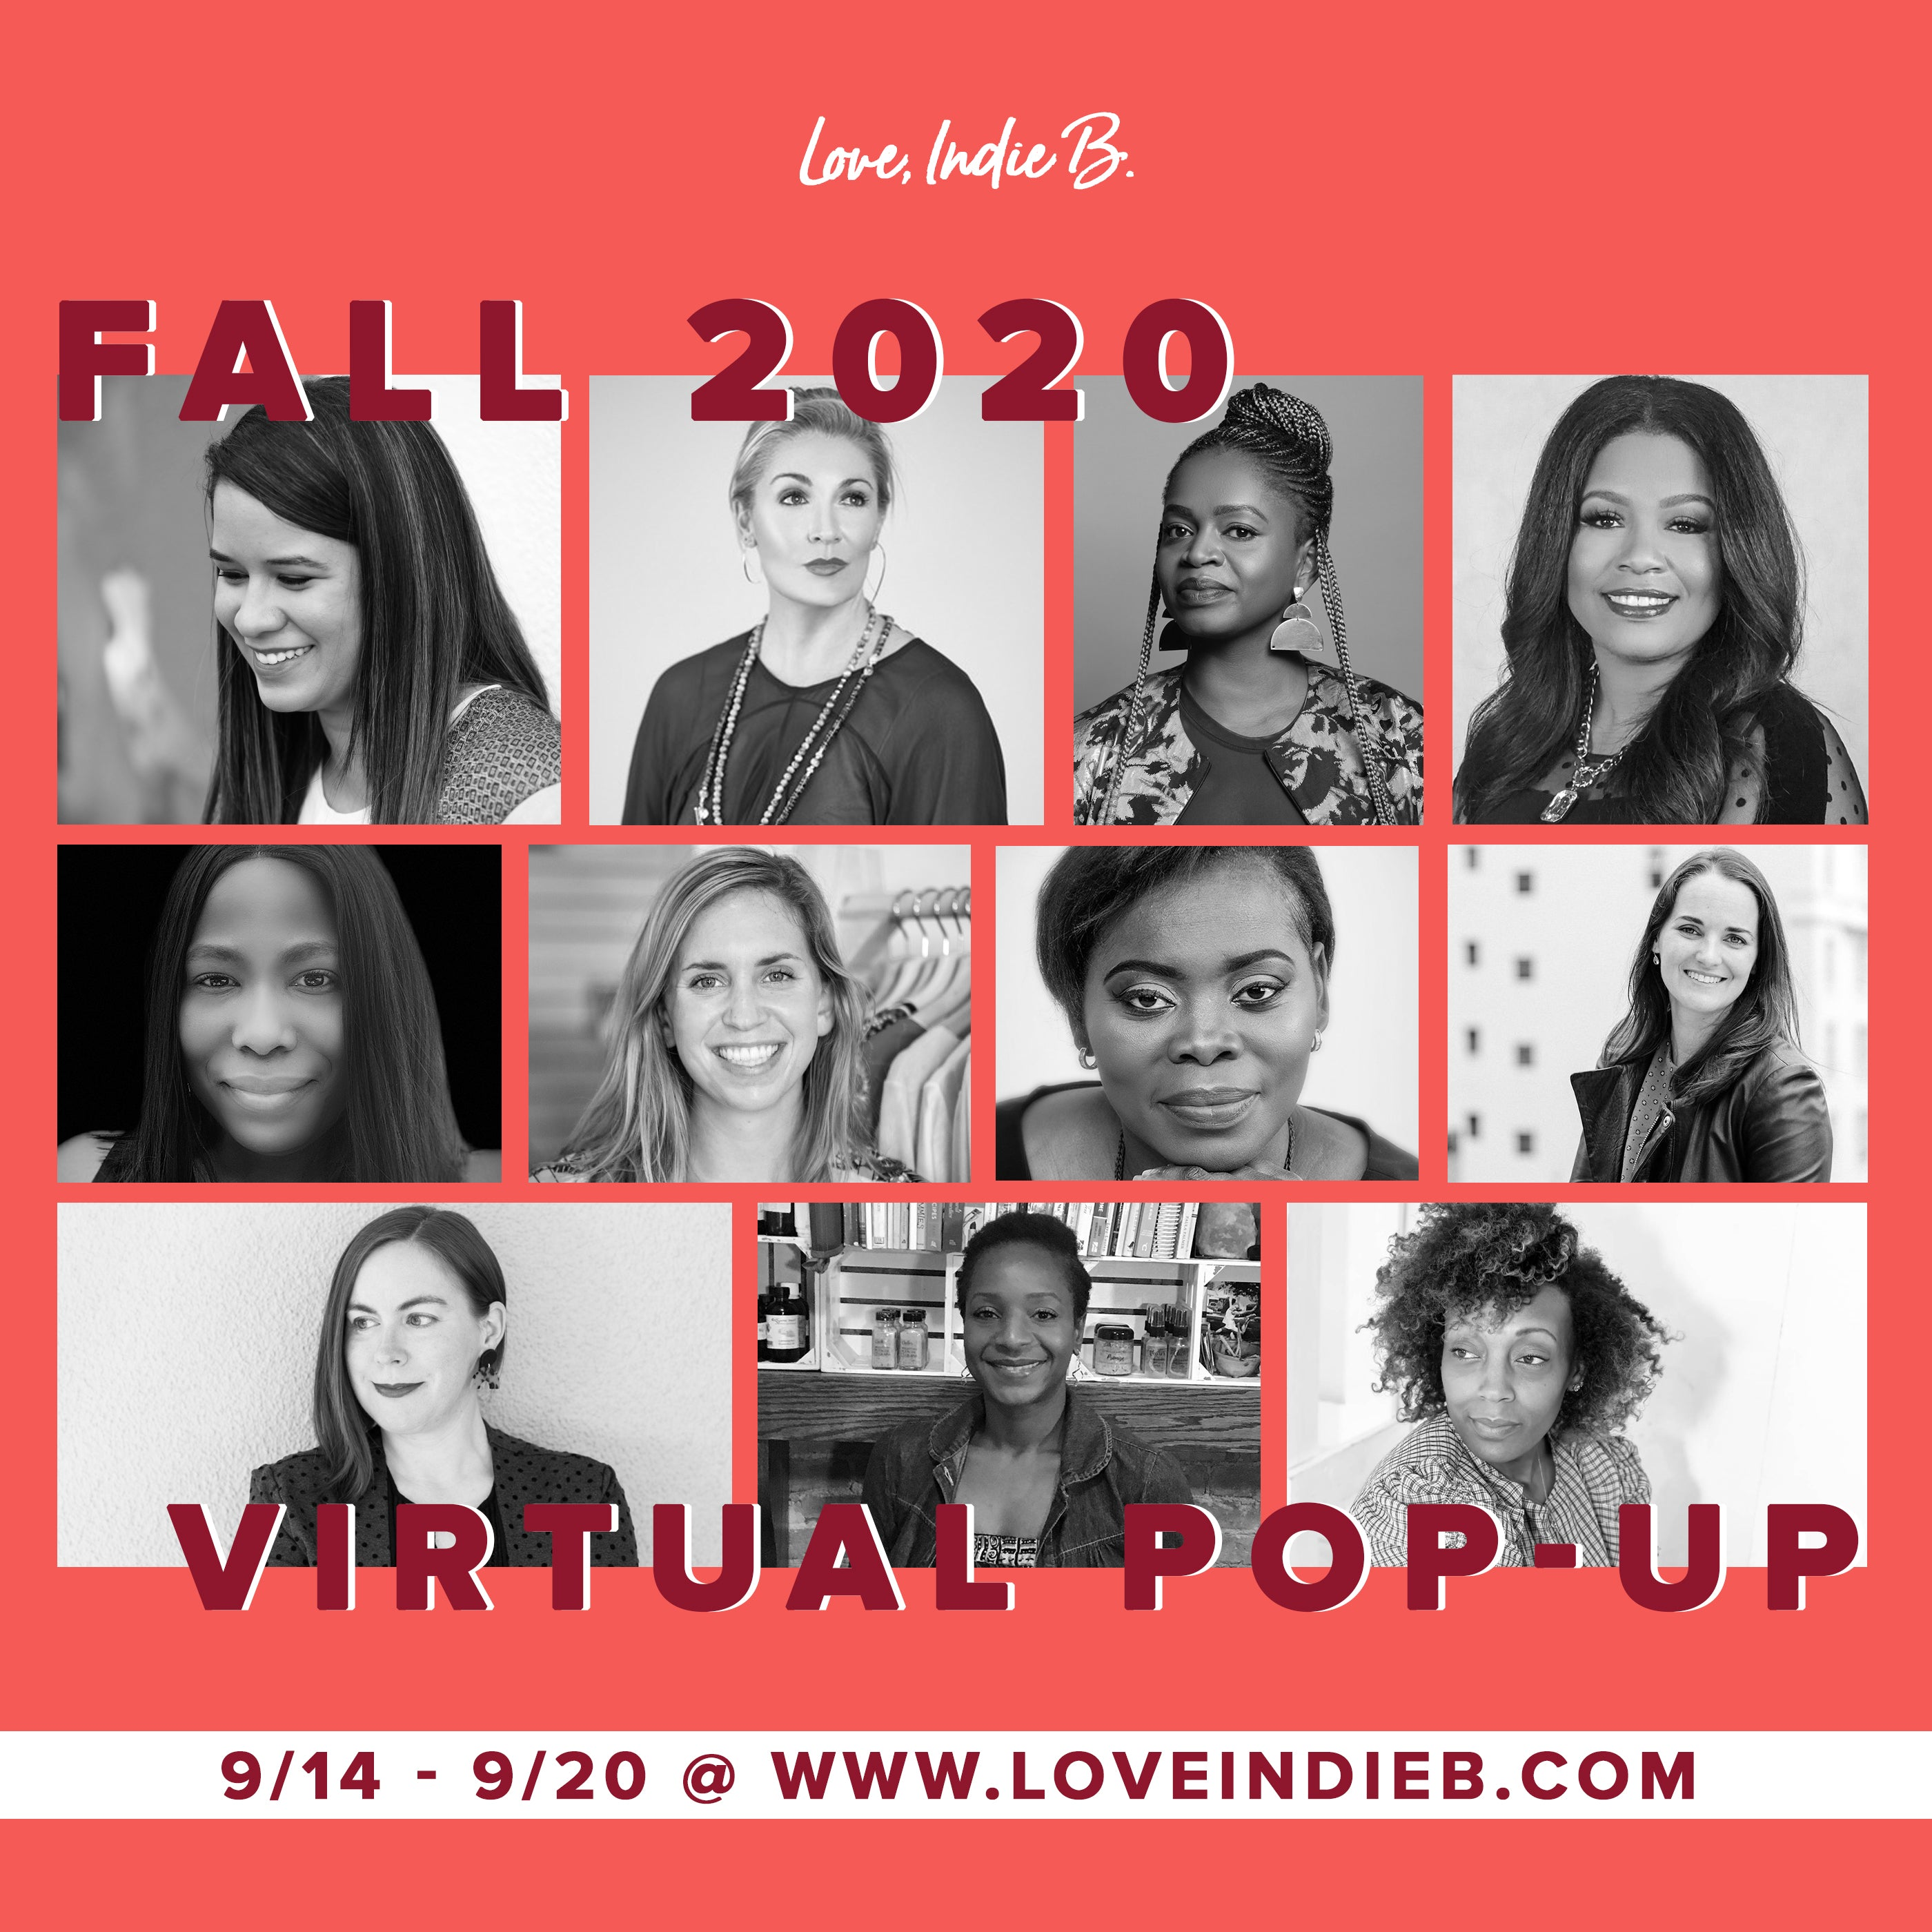 Love-indie-b-fall-2020-pop-up